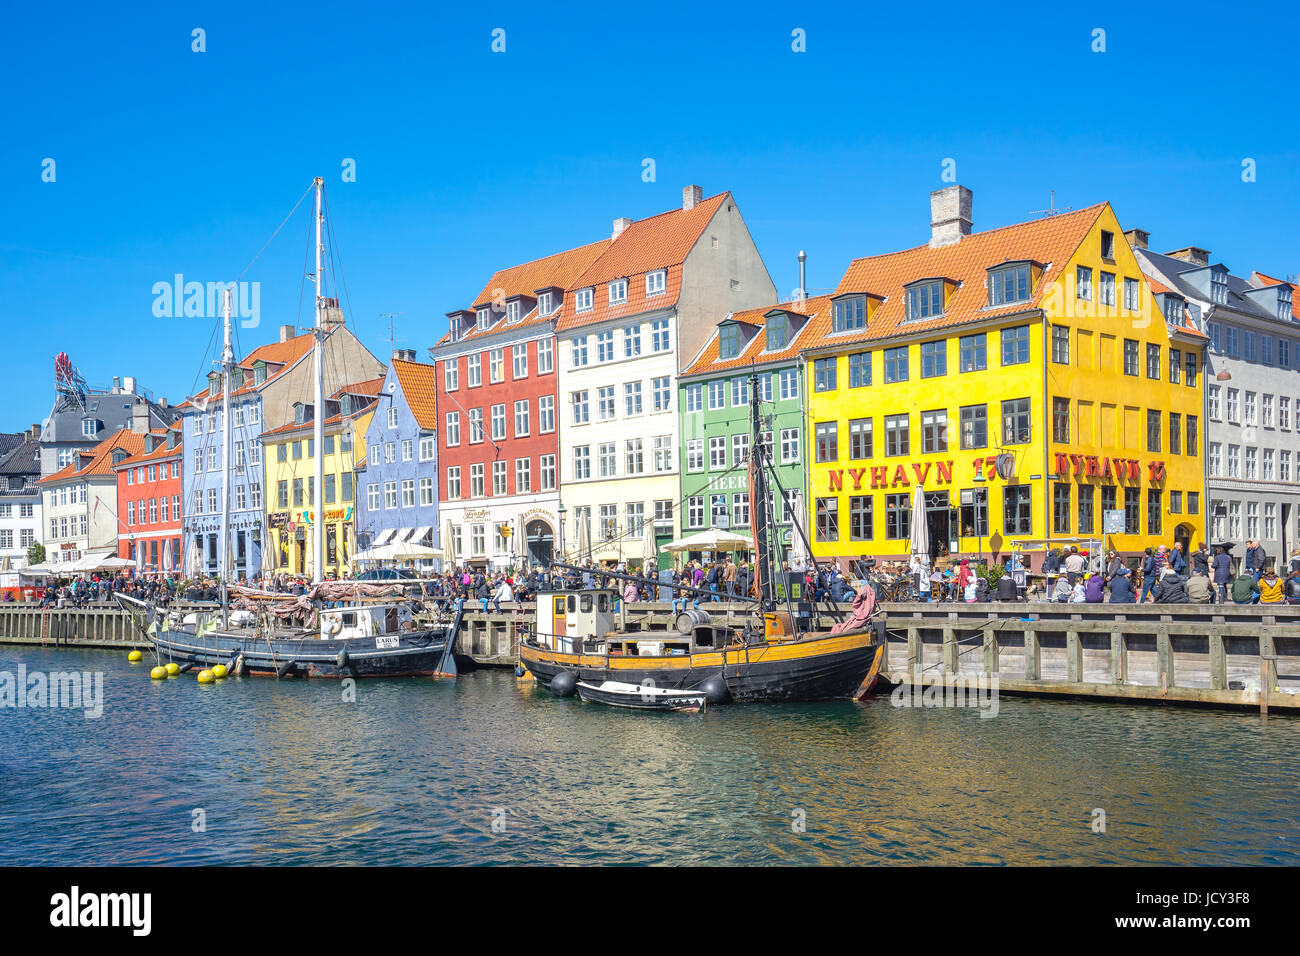 Copenhagen, Denmark - May 1, 2017: Nyhavn was originally a busy commercial port where ships from all over the world - Stock Image